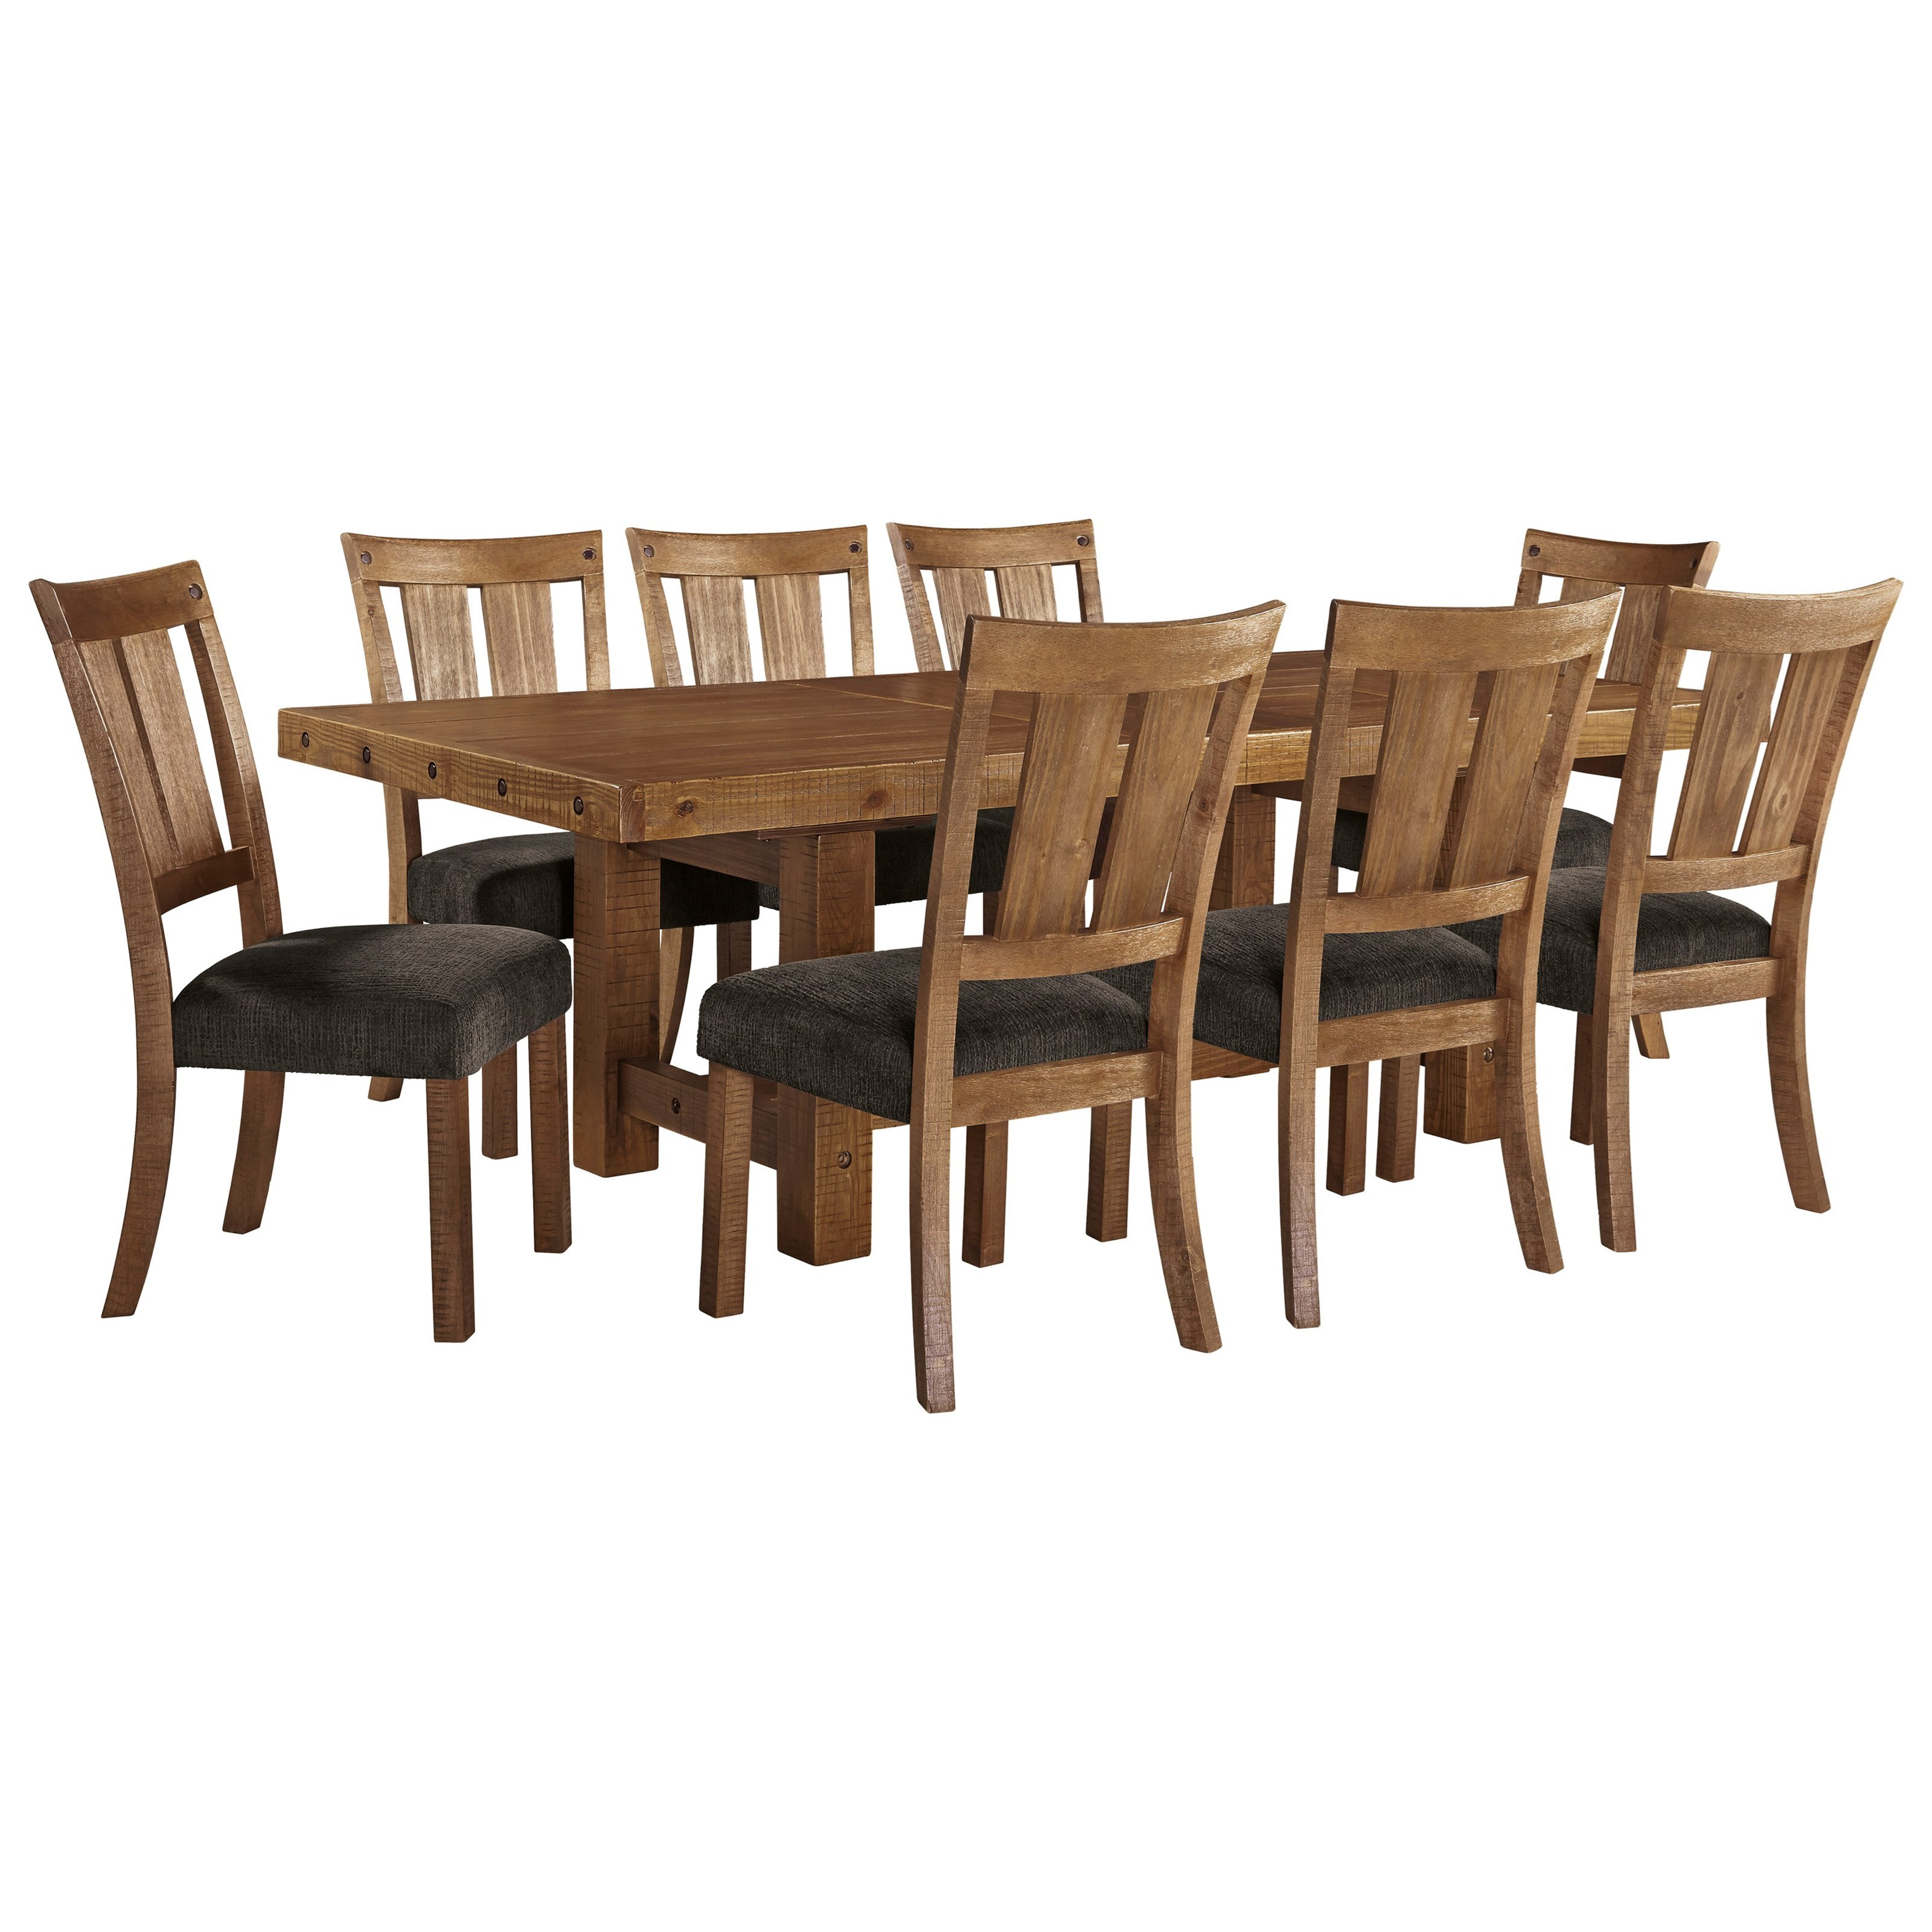 9 Piece Table & Chair Set with Leaf